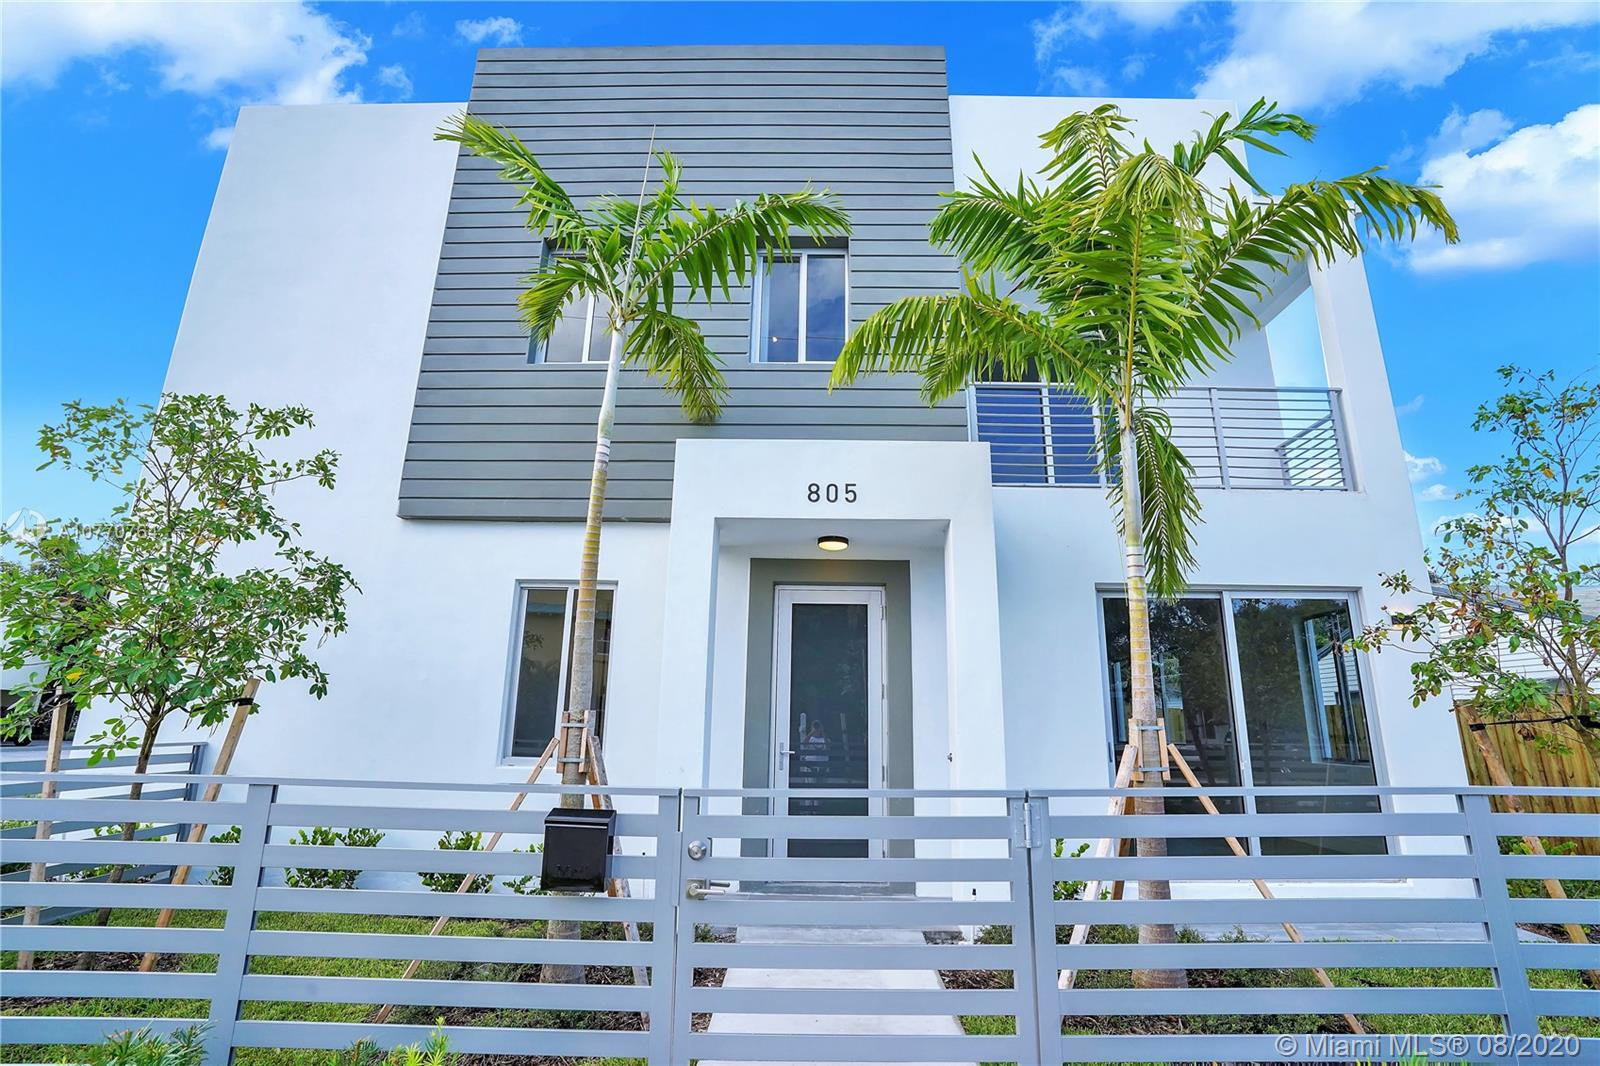 NEW CONSTRUCTION! Newest townhouse in Fort Lauderdale can now be yours! 1922 SF under air. Townhouse community of 4 units. 3 bedrooms, 2.5 bathrooms, 2 car garage, private backyard, beautiful finishes and layout. A great room with open layout and kitchen island. 3 bedrooms on 2nd floor. Garage, living room, powder room, dinning room and kitchen on first floor. Estimated delivery September 2020.